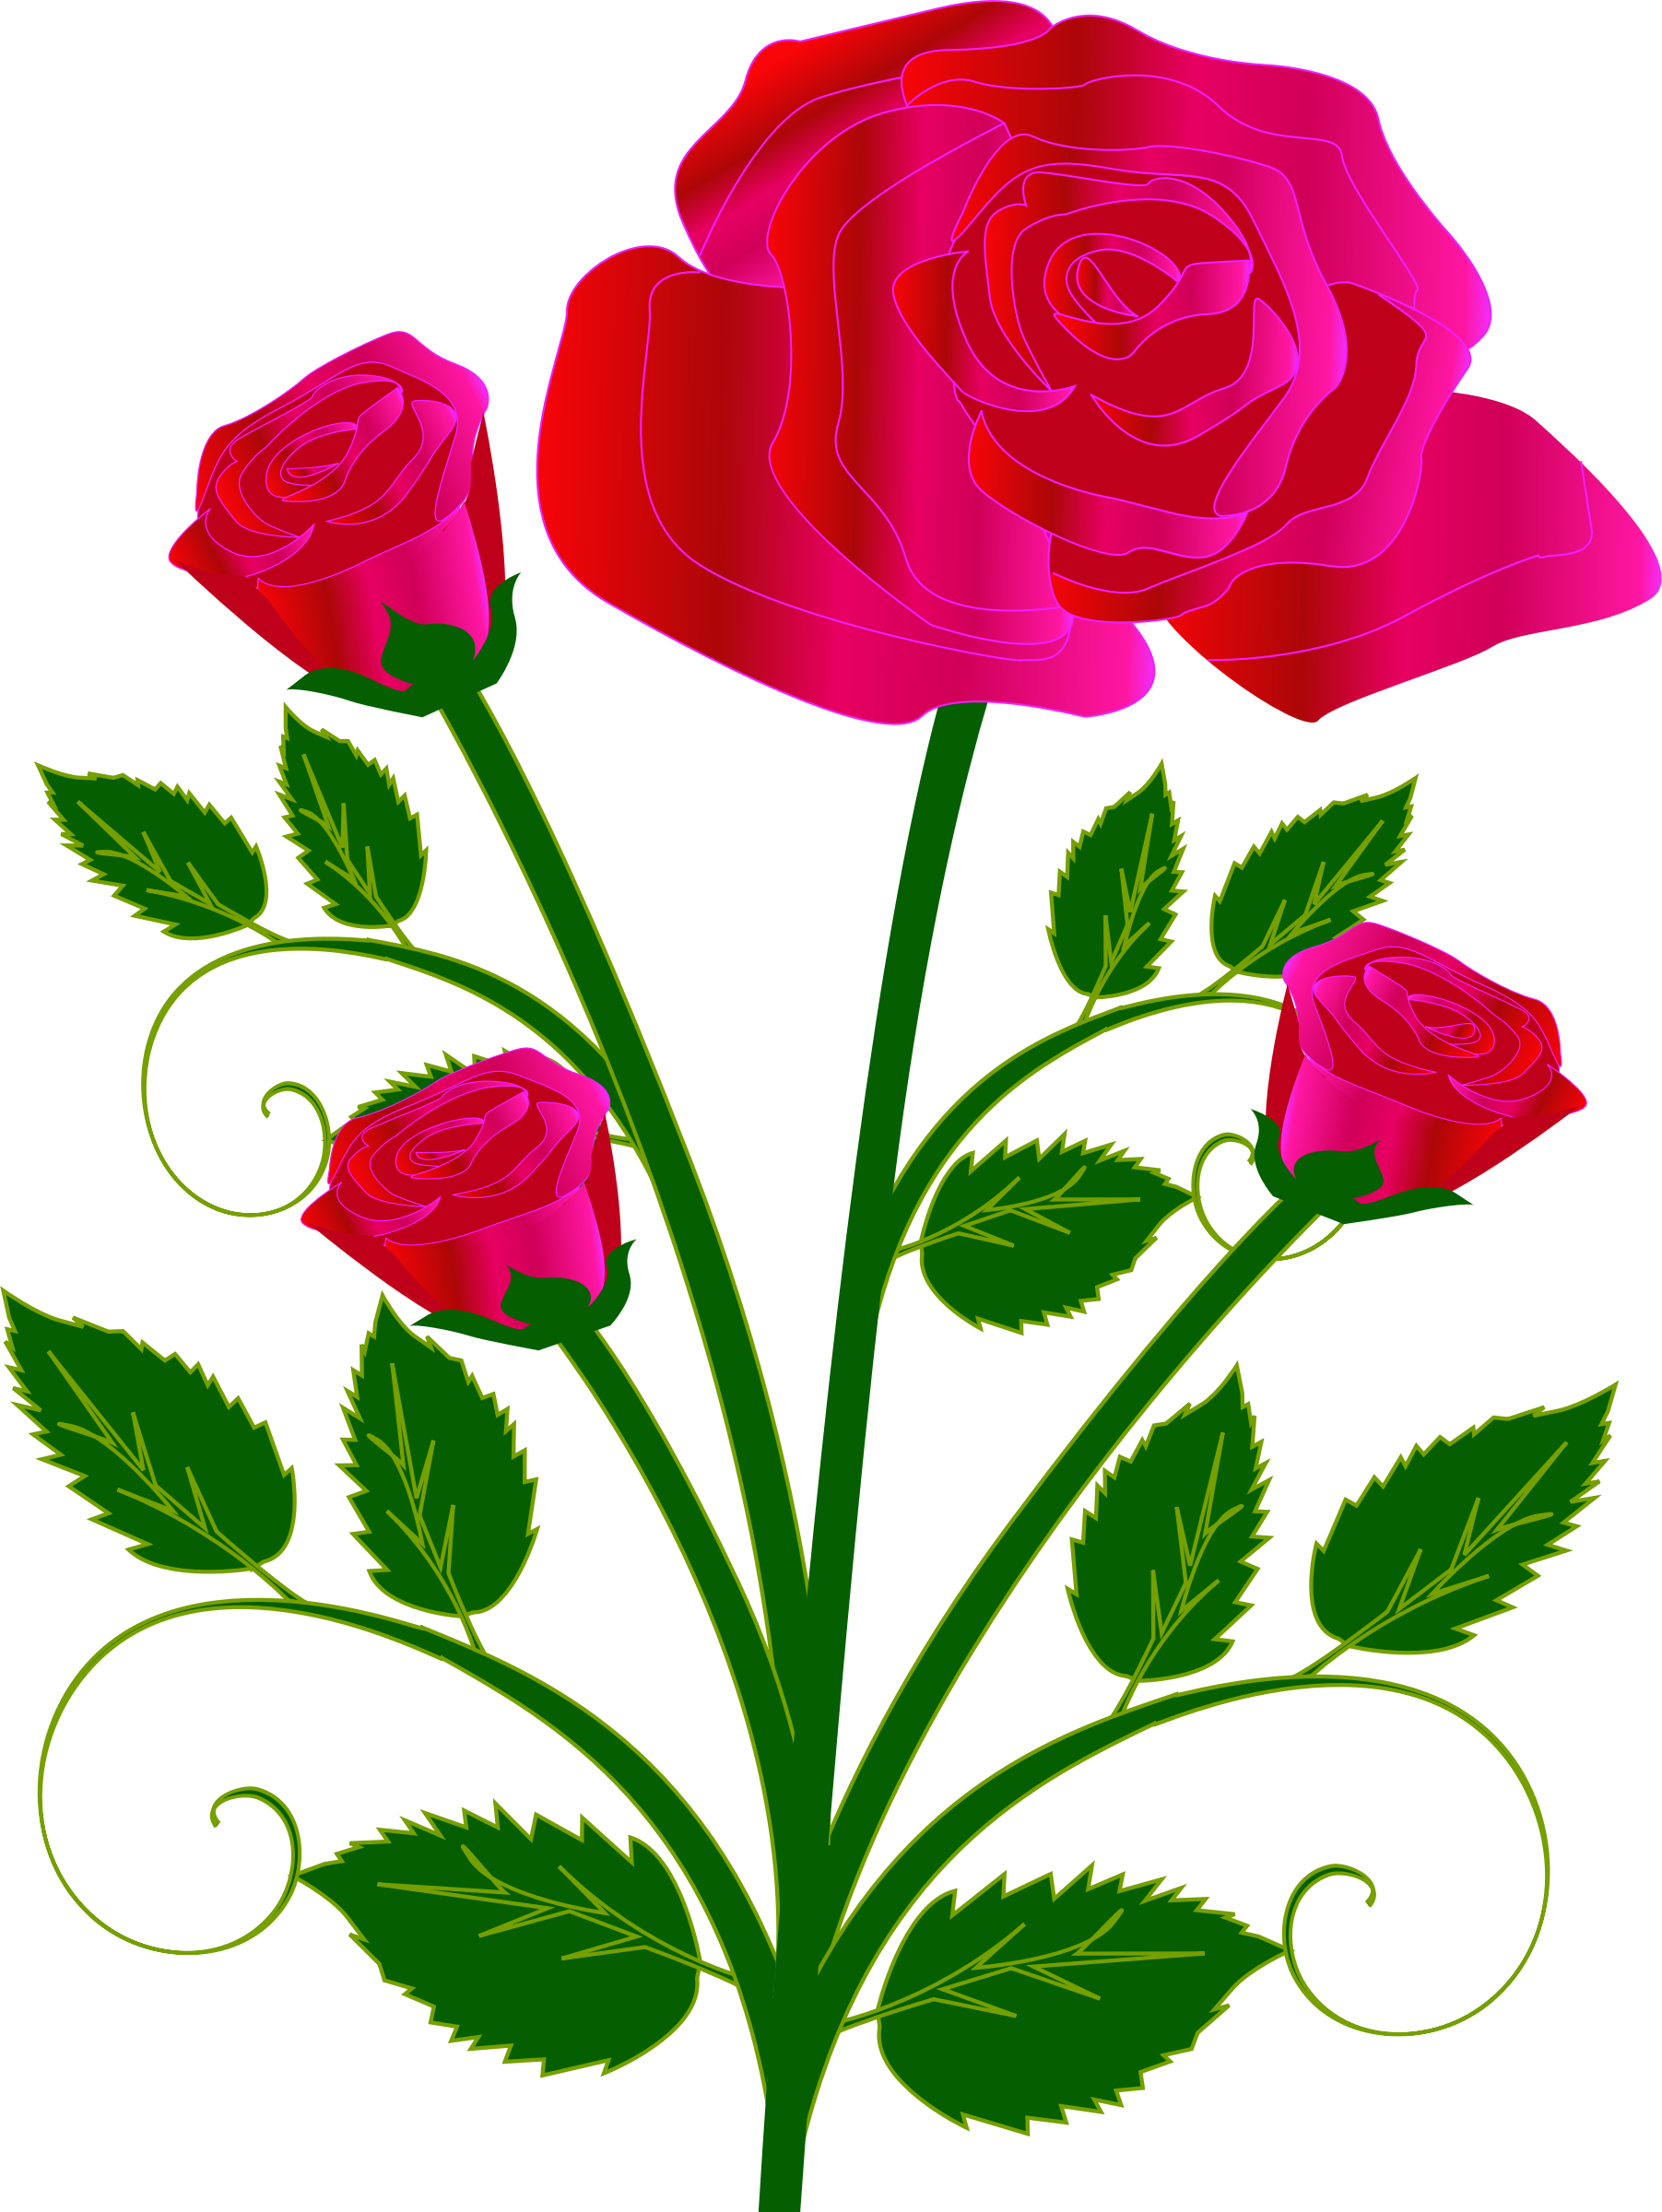 Rose big image png. Clipart roses easy